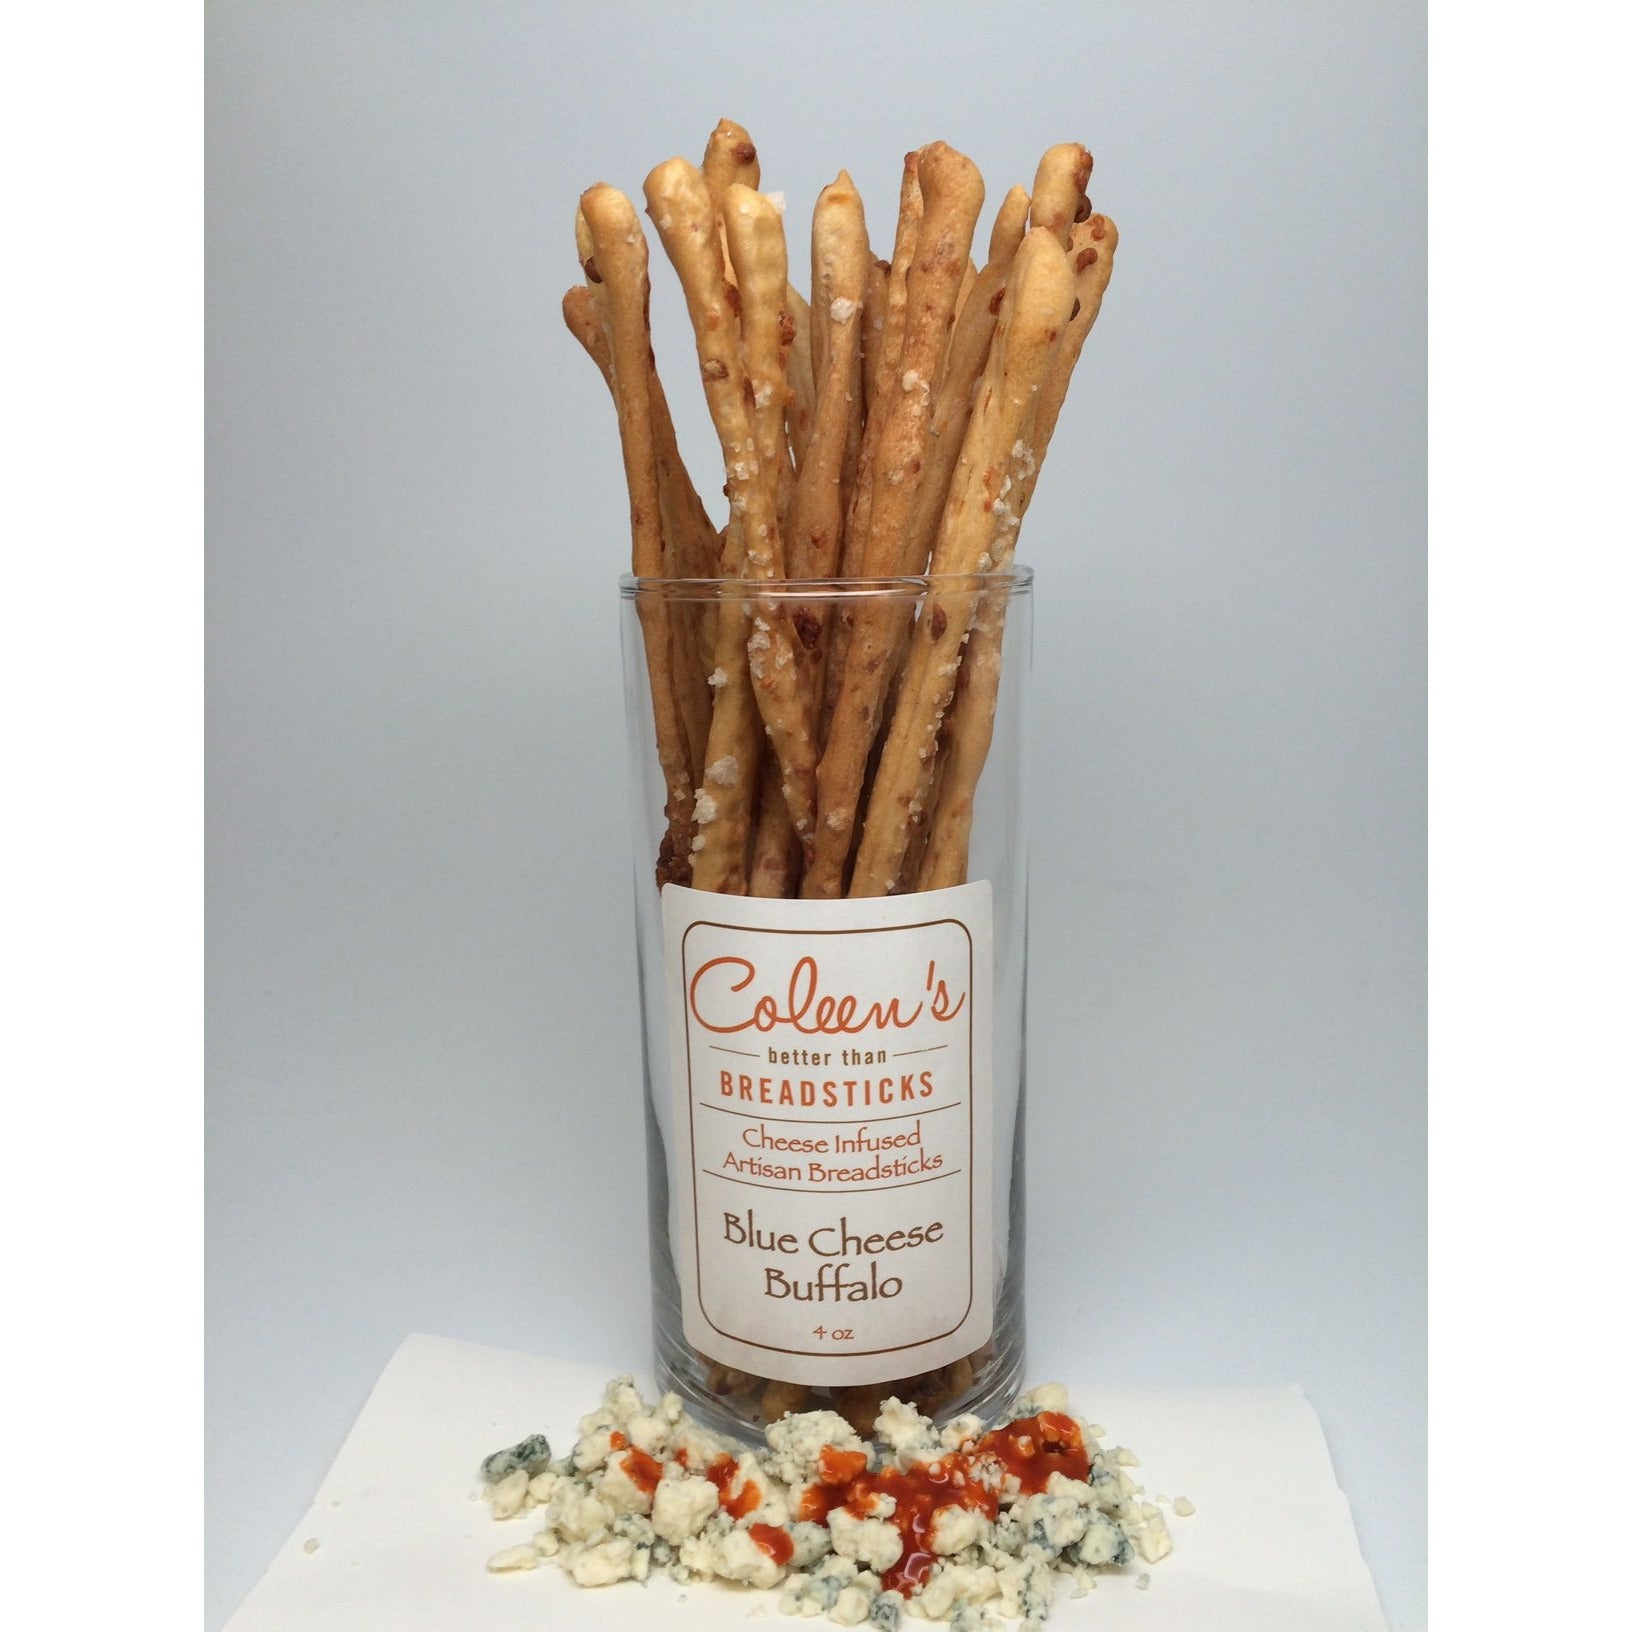 Coleen's Blue Cheese Buffalo Breadsticks 4oz